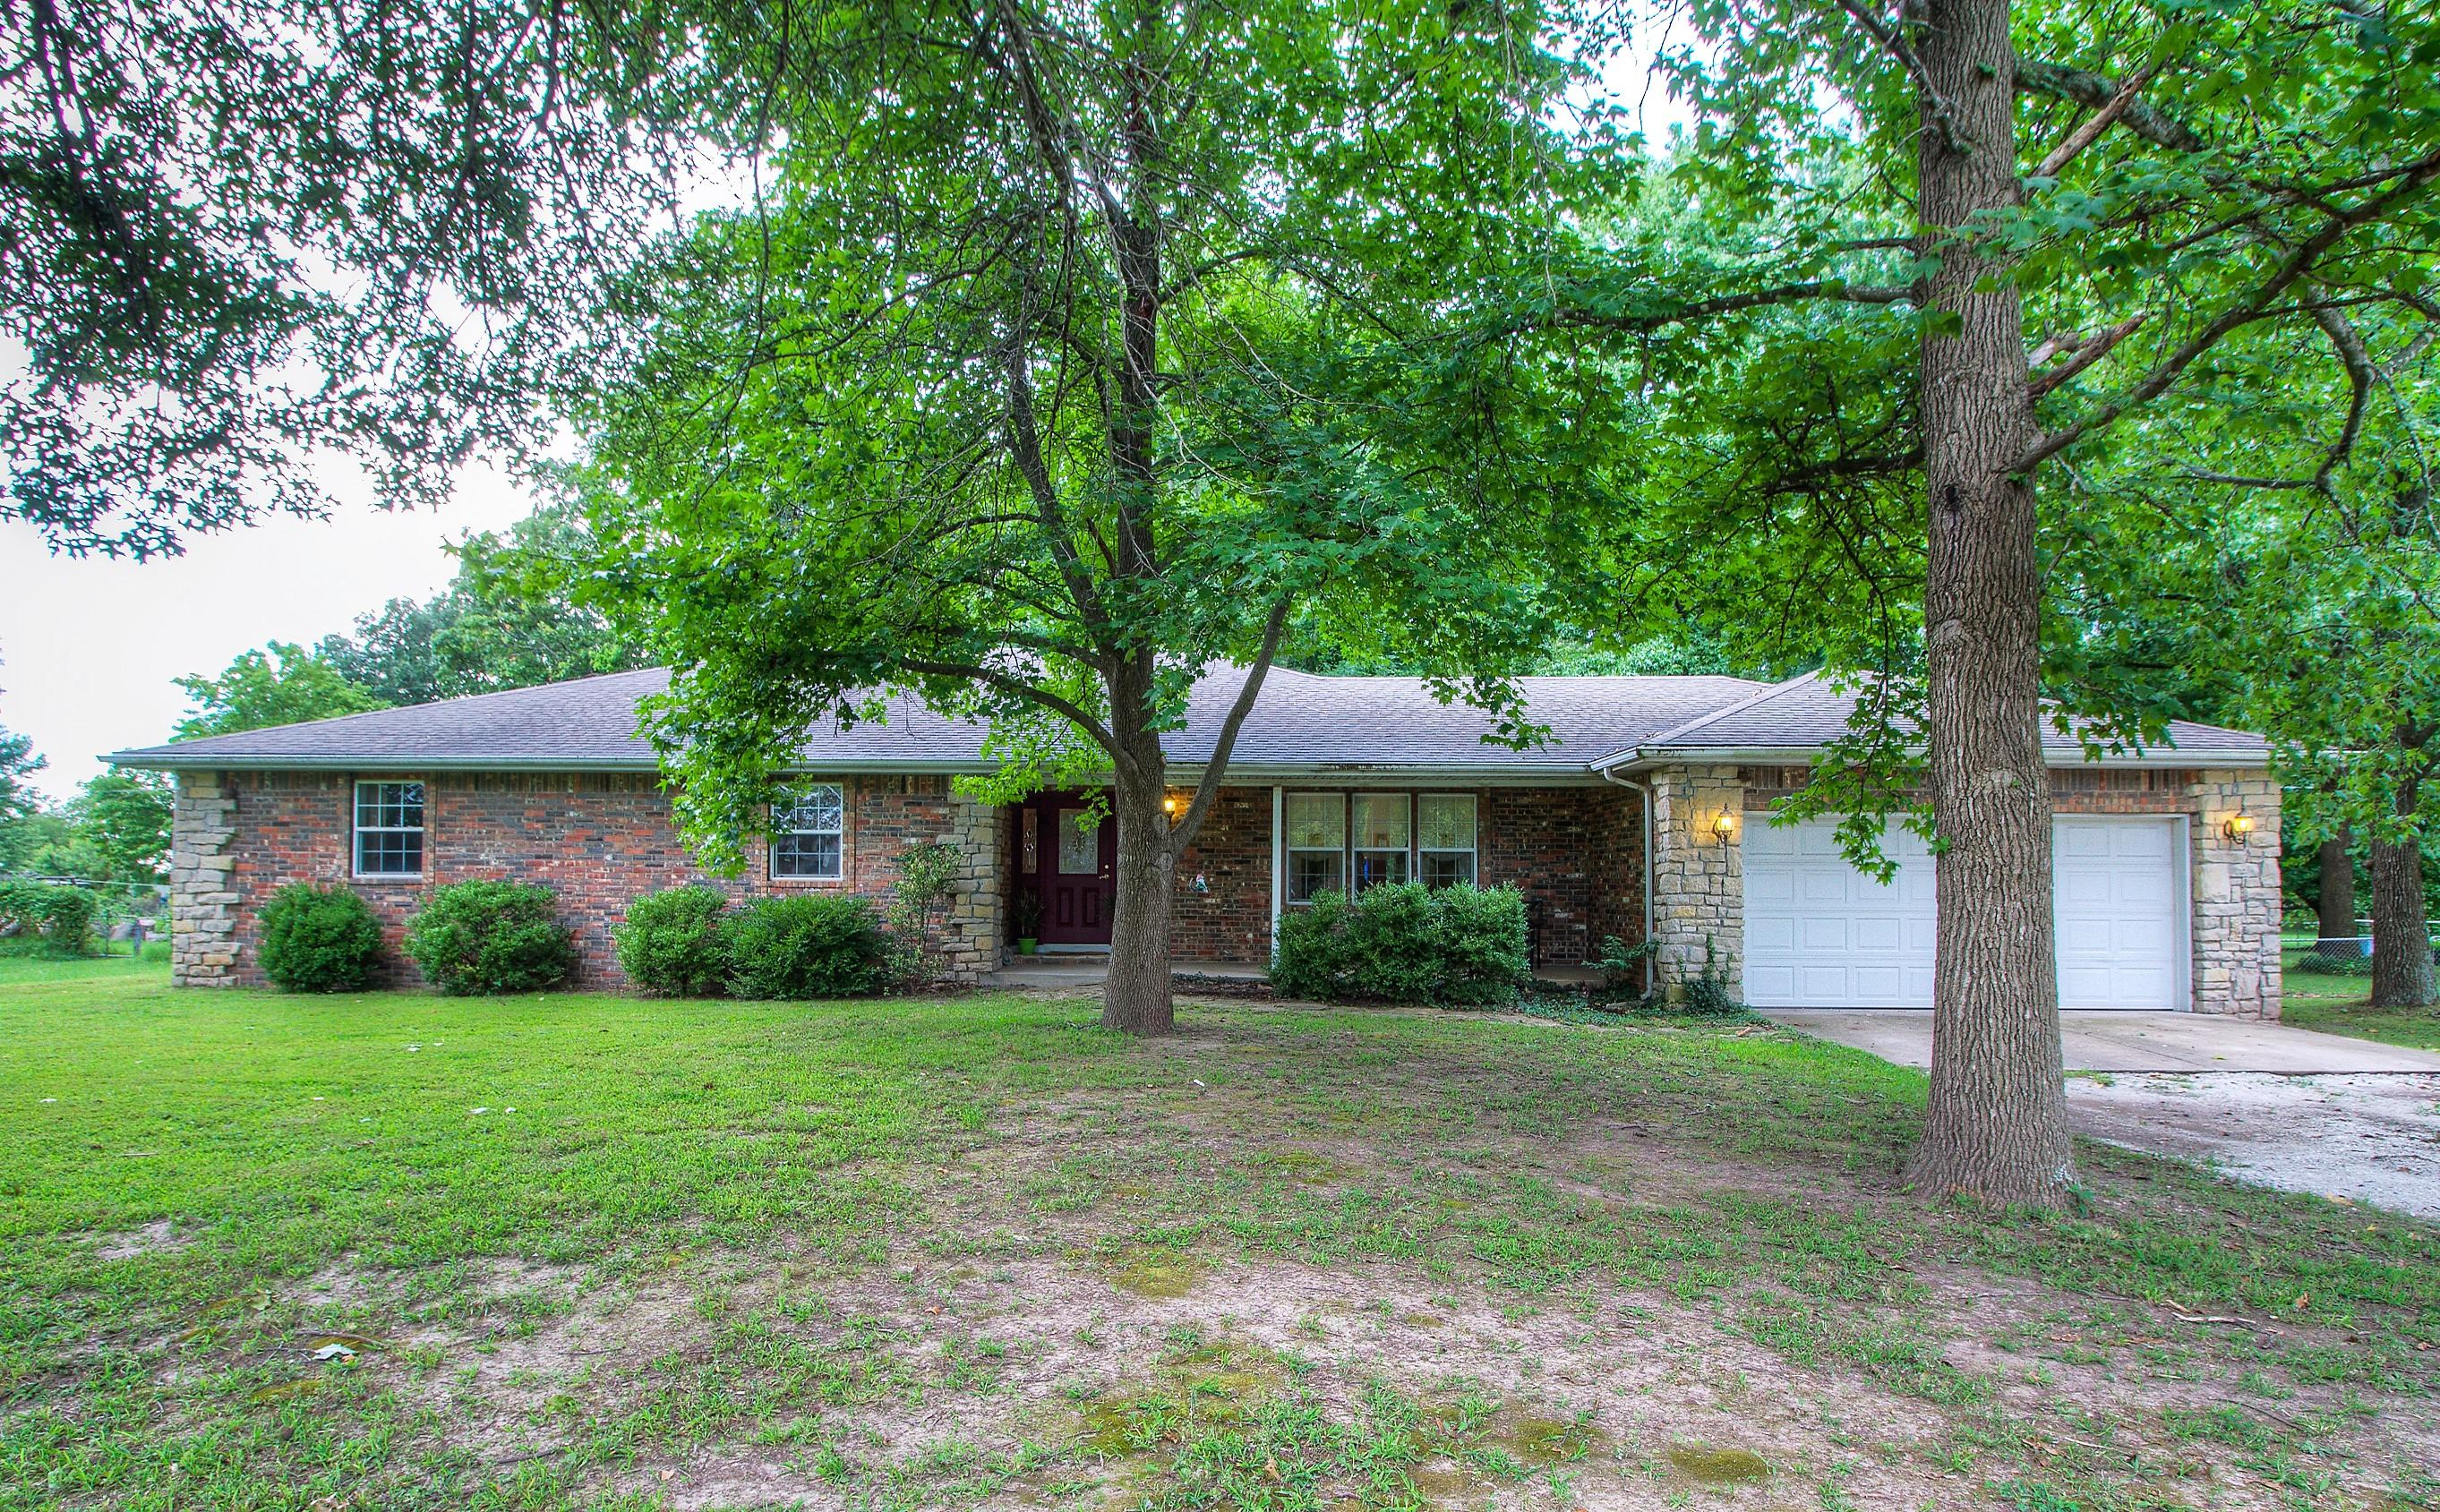 5365 South State Highway Ff Battlefield, MO 65619